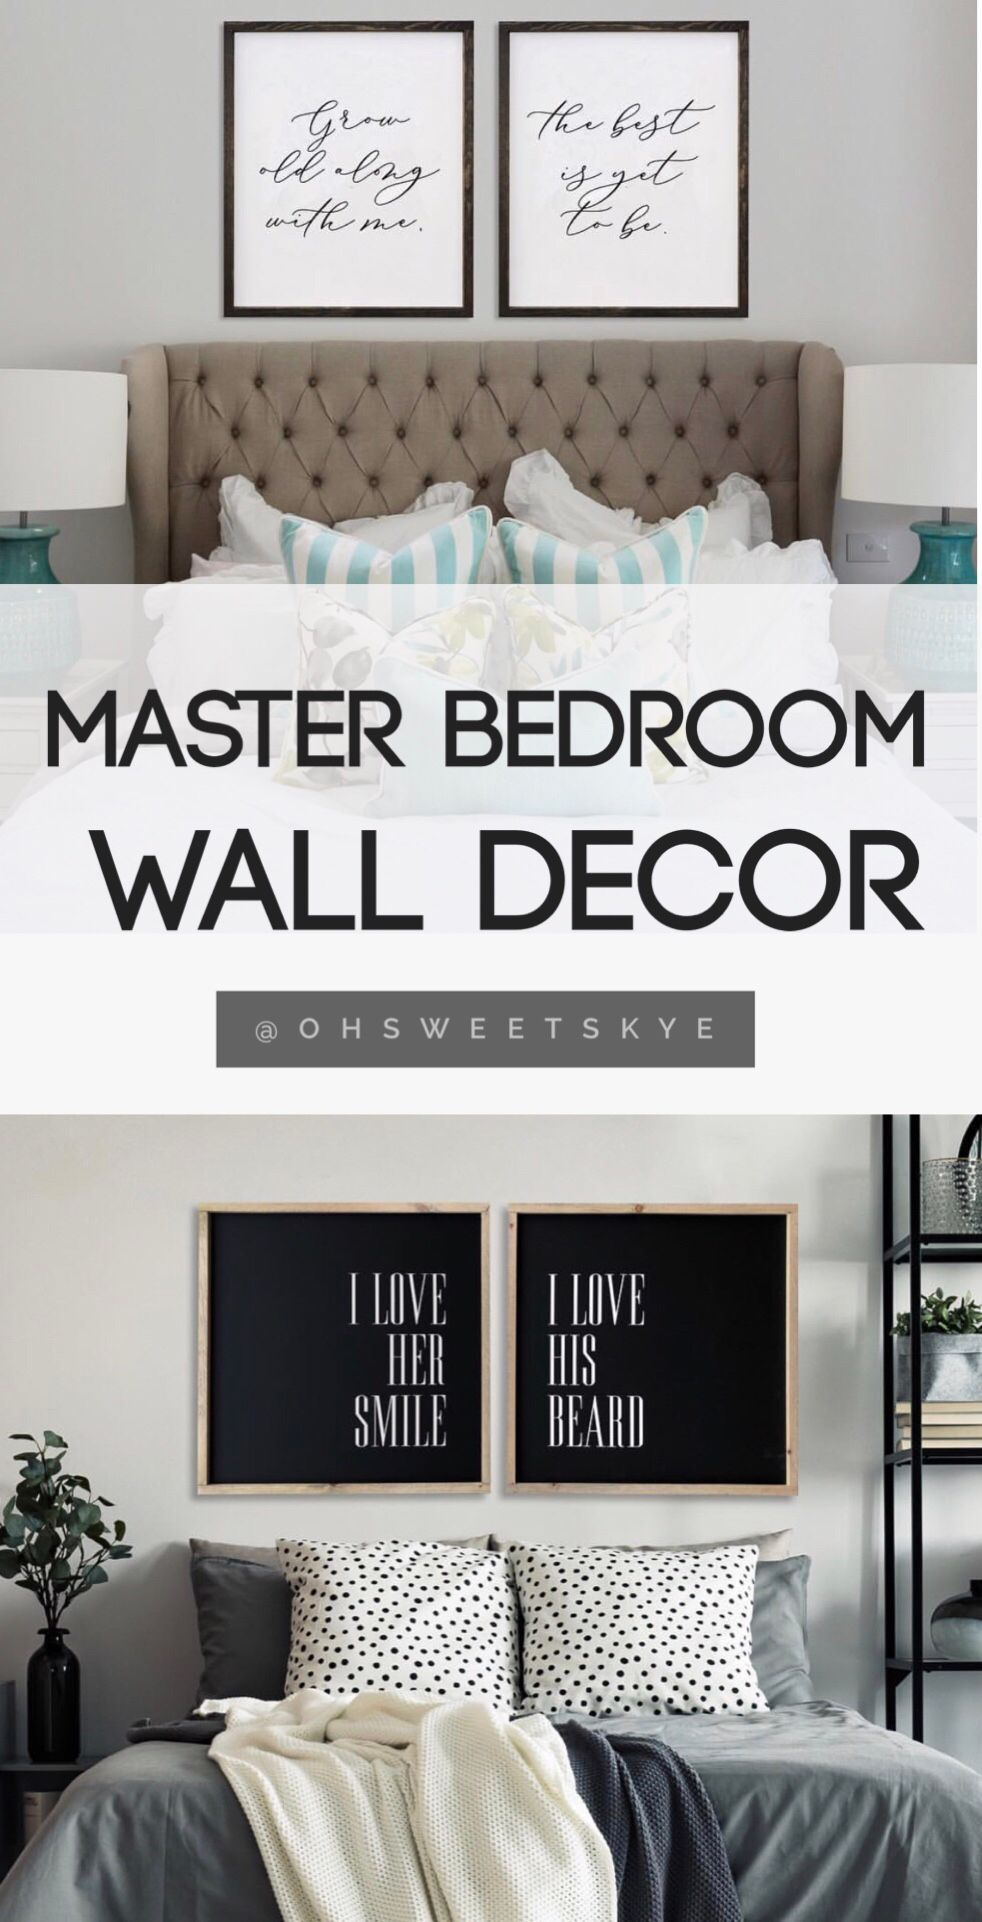 Master bedroom wall decor / master bedroom decoration ideas